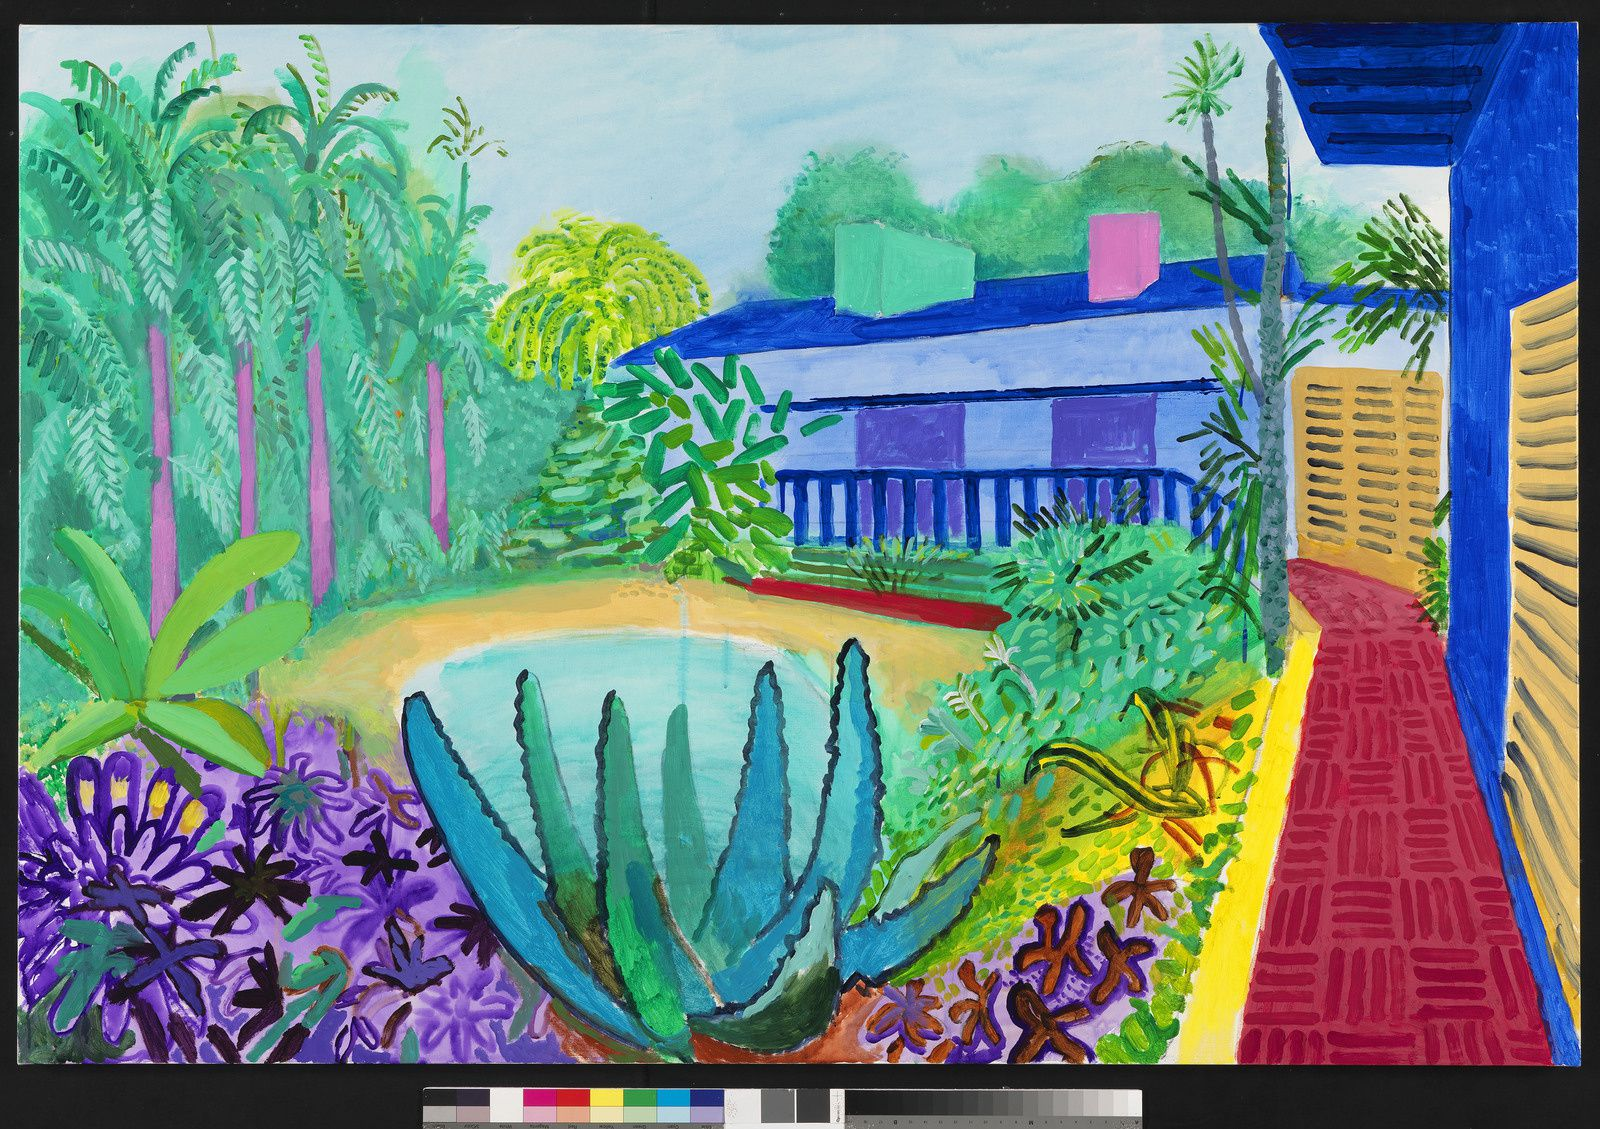 """Garden"", 2015 - 2016 de David HOCKNEY - Photo Richard Schmidt"